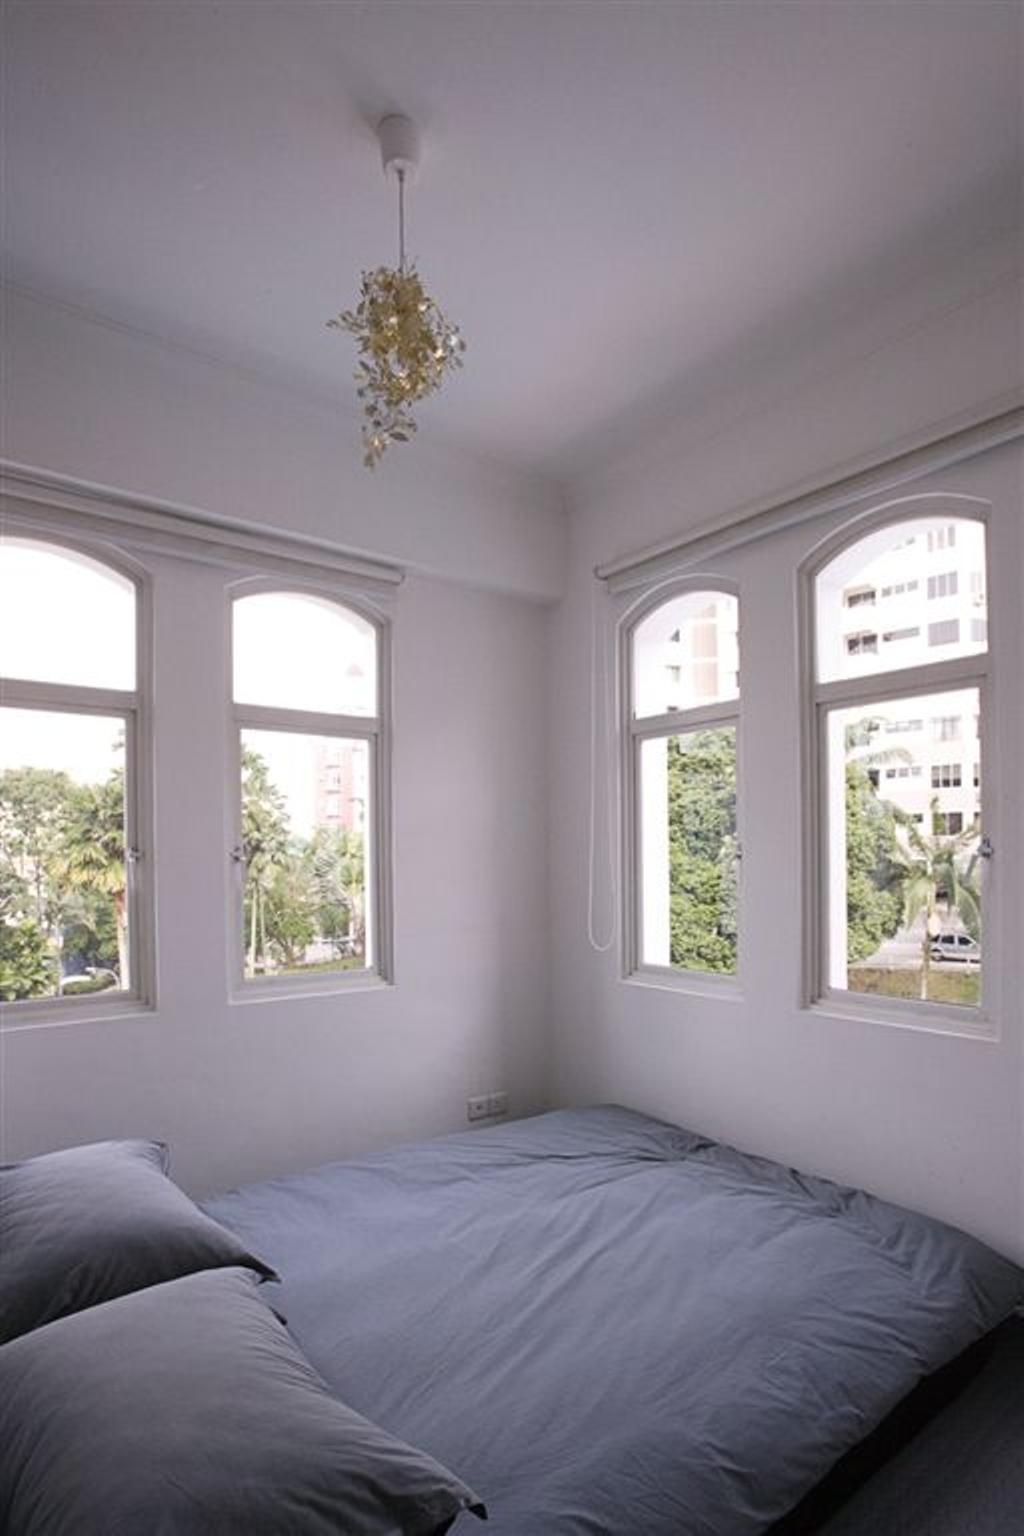 Eclectic, Condo, Bedroom, Chateau Le Fame, Interior Designer, Free Space Intent, Window